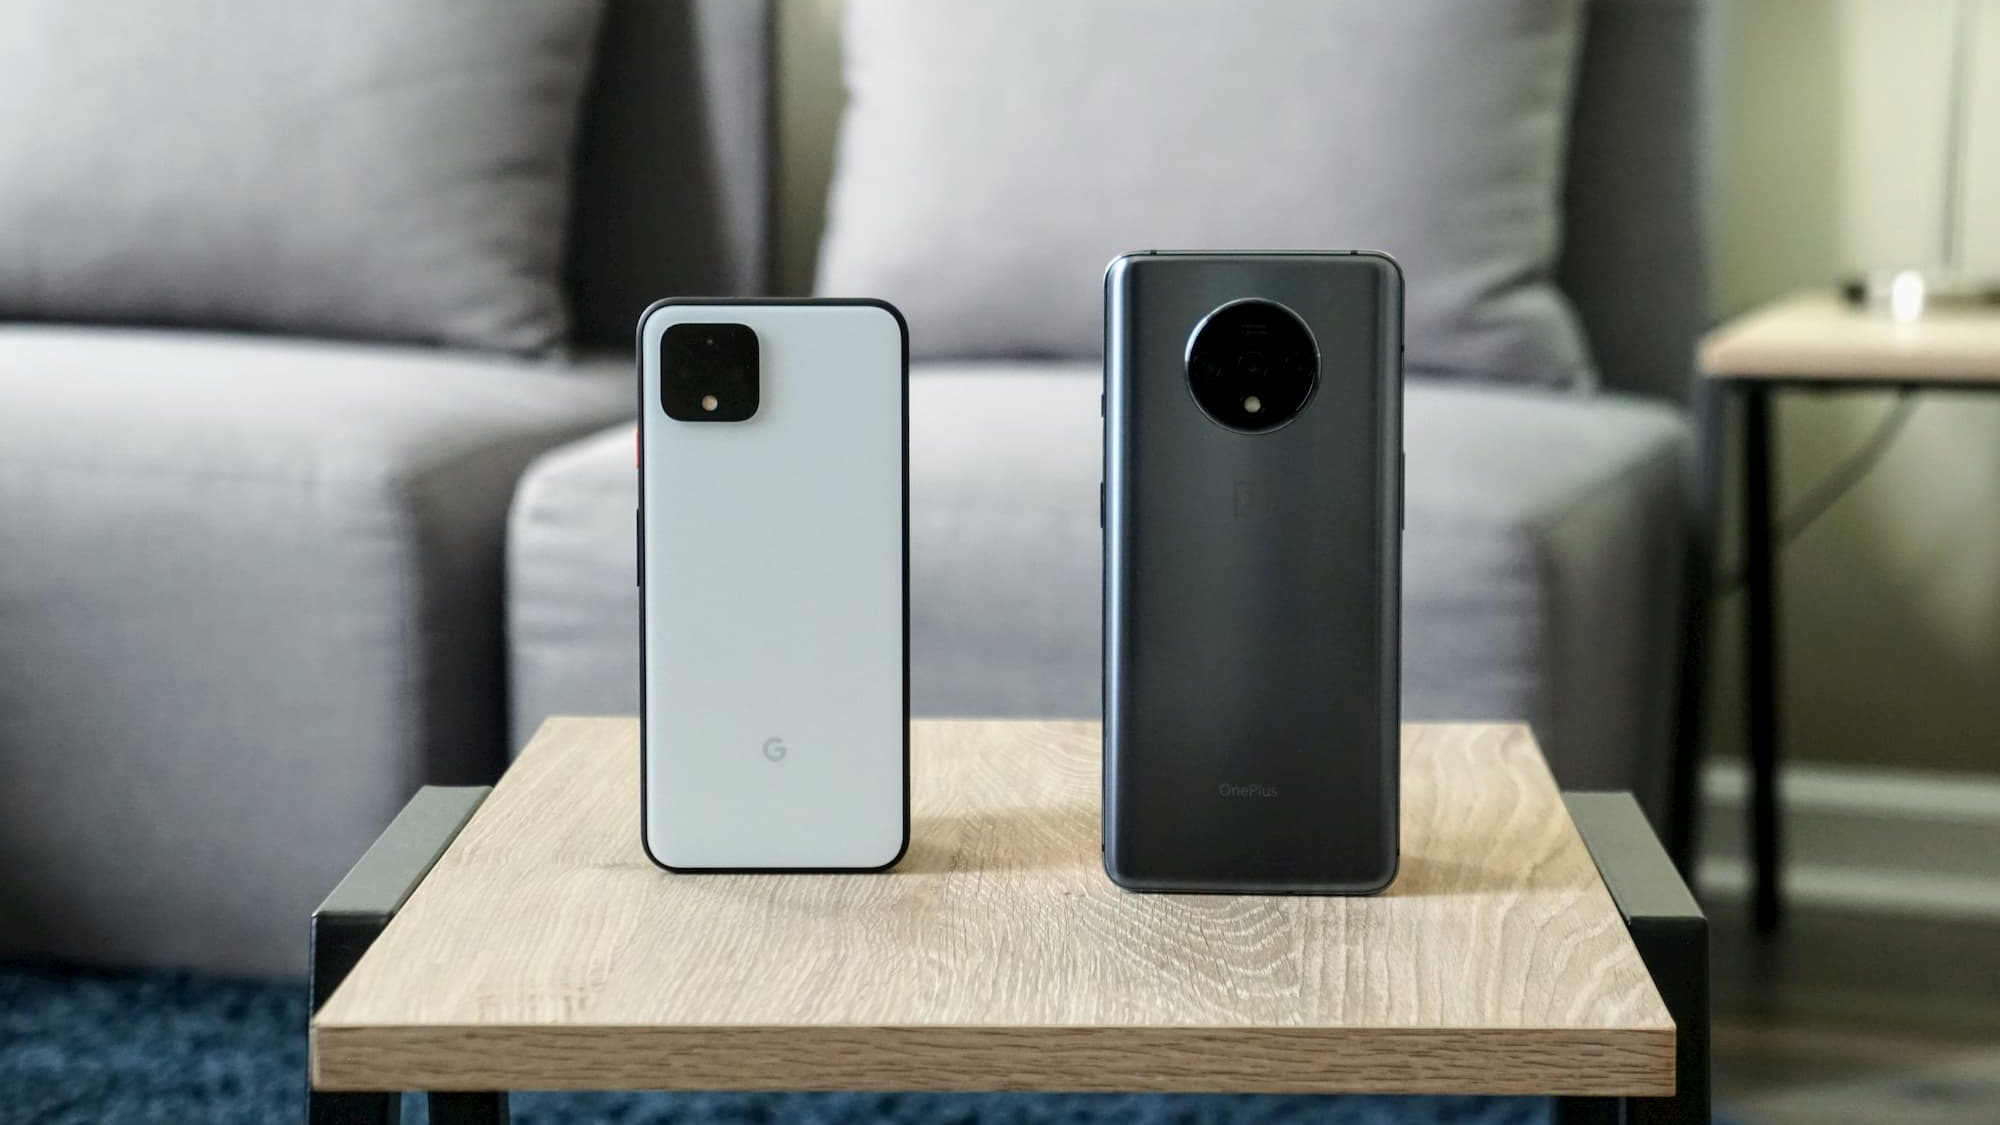 Opinion: Why I haven't bought the Pixel 4 yet [VIDEO]